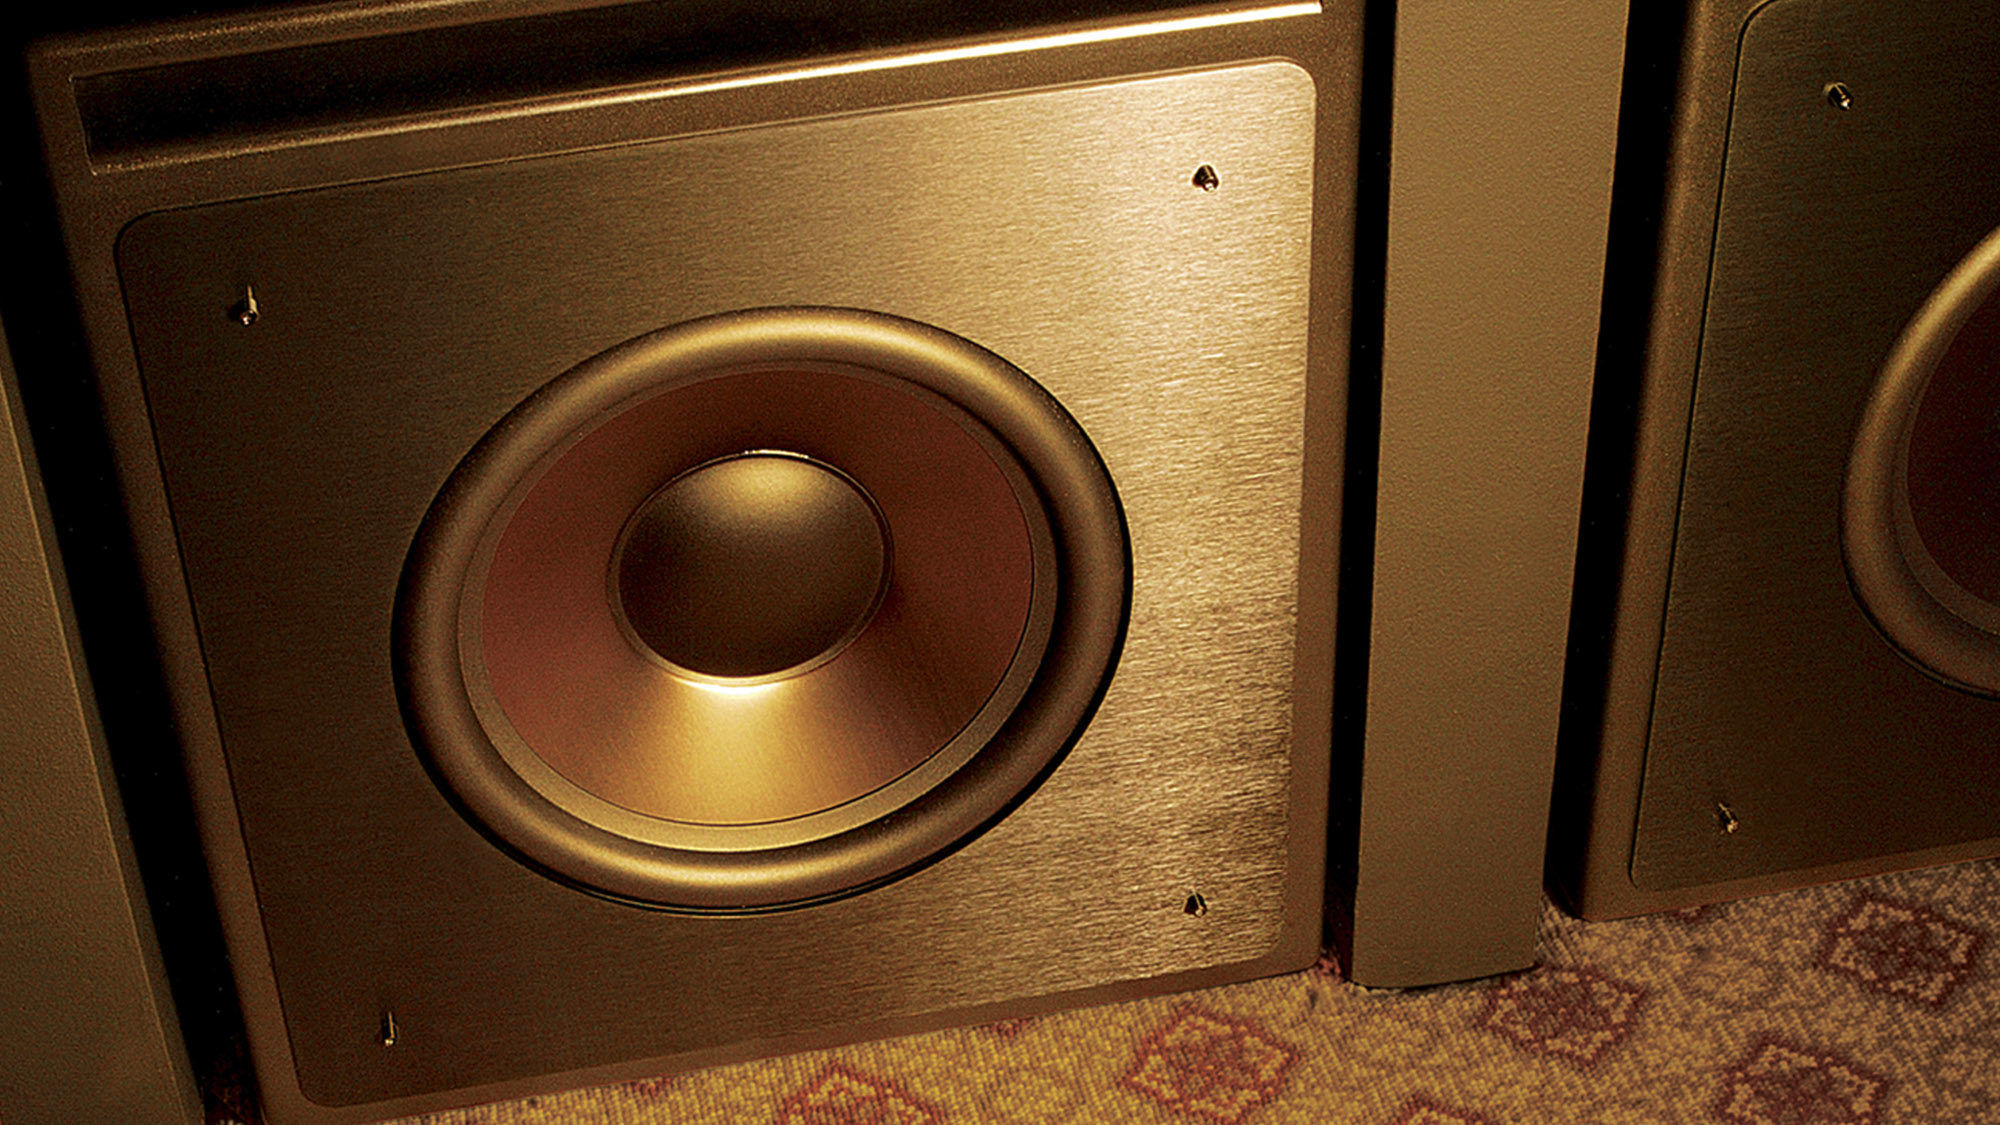 Klipsch  Thx  Ultra2  Series  Subwoofer  Lifestyle